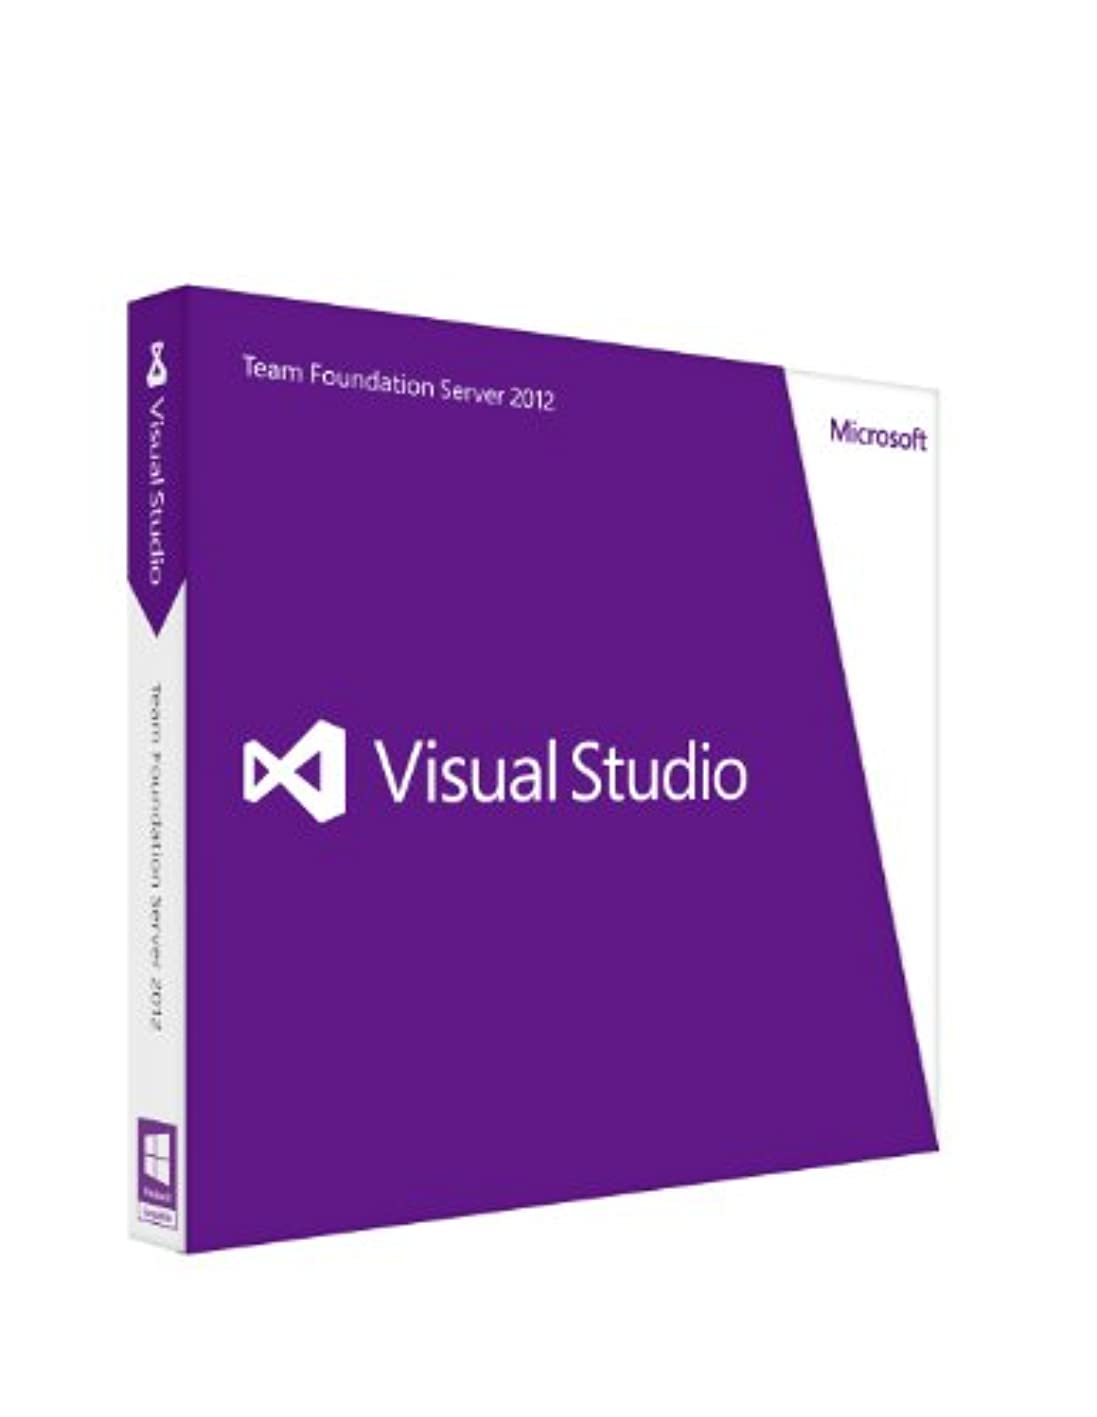 夏有限文芸Microsoft Visual Studio Team Foundation Server 2012 ユーザー CAL